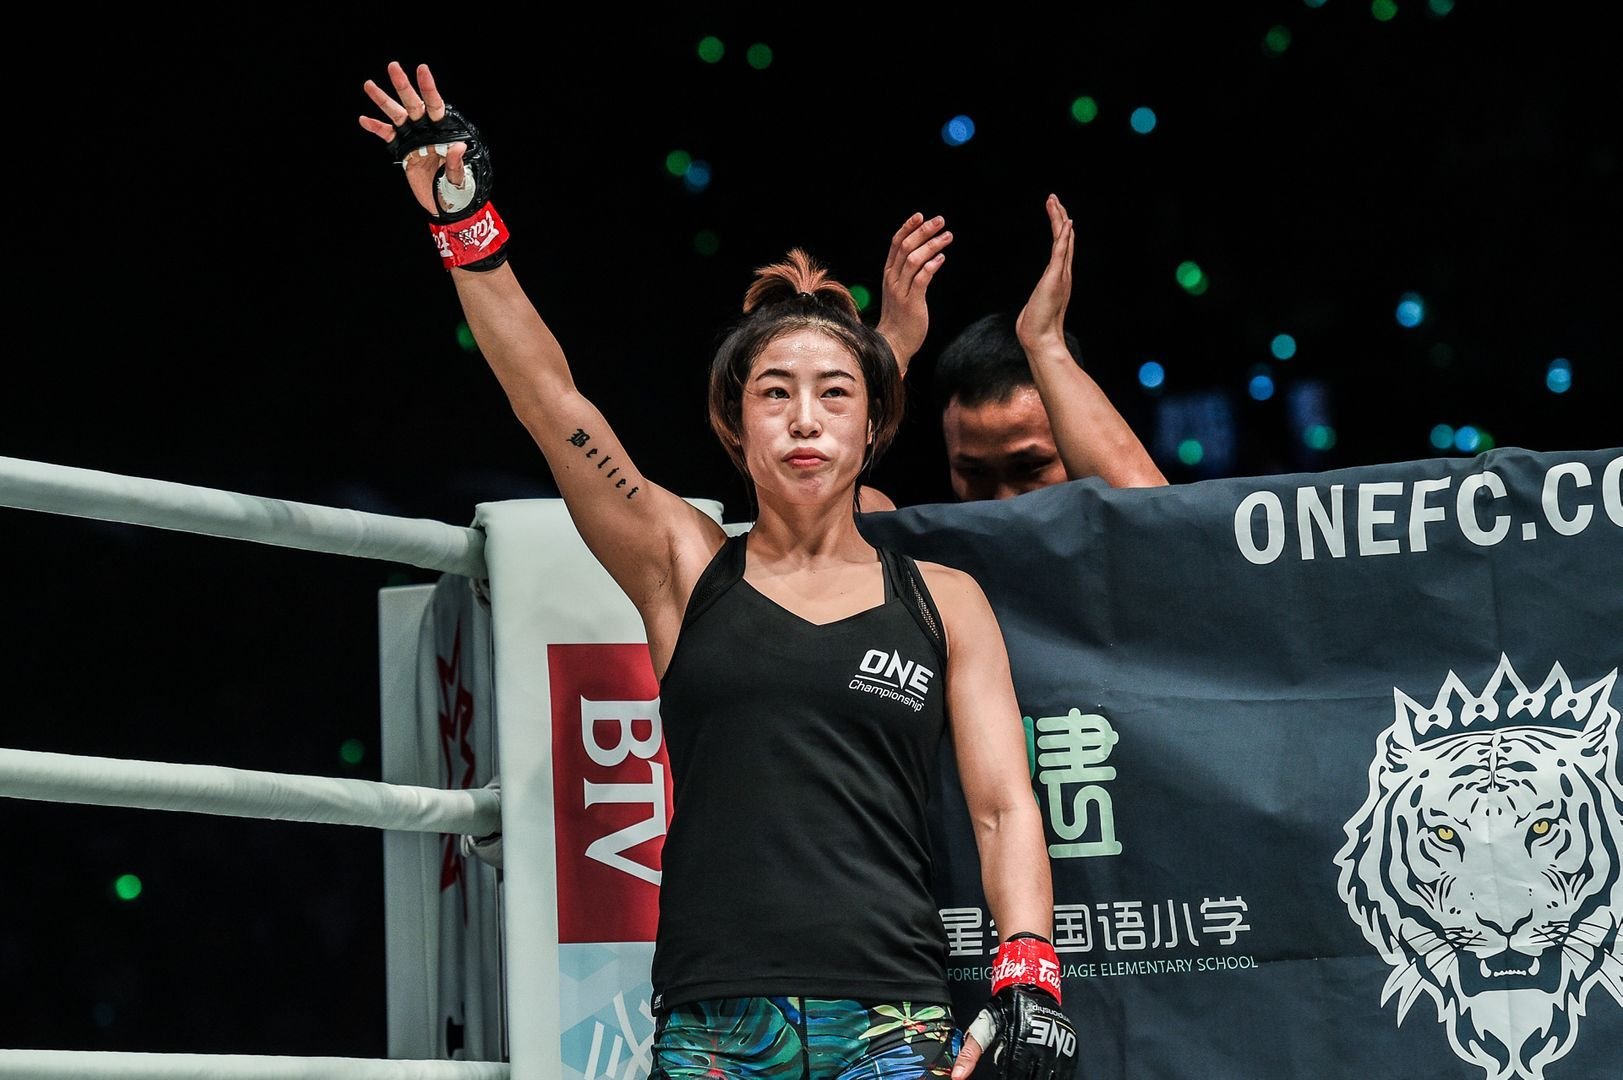 Chinese mixed martial artist Meng Bo raises her arm